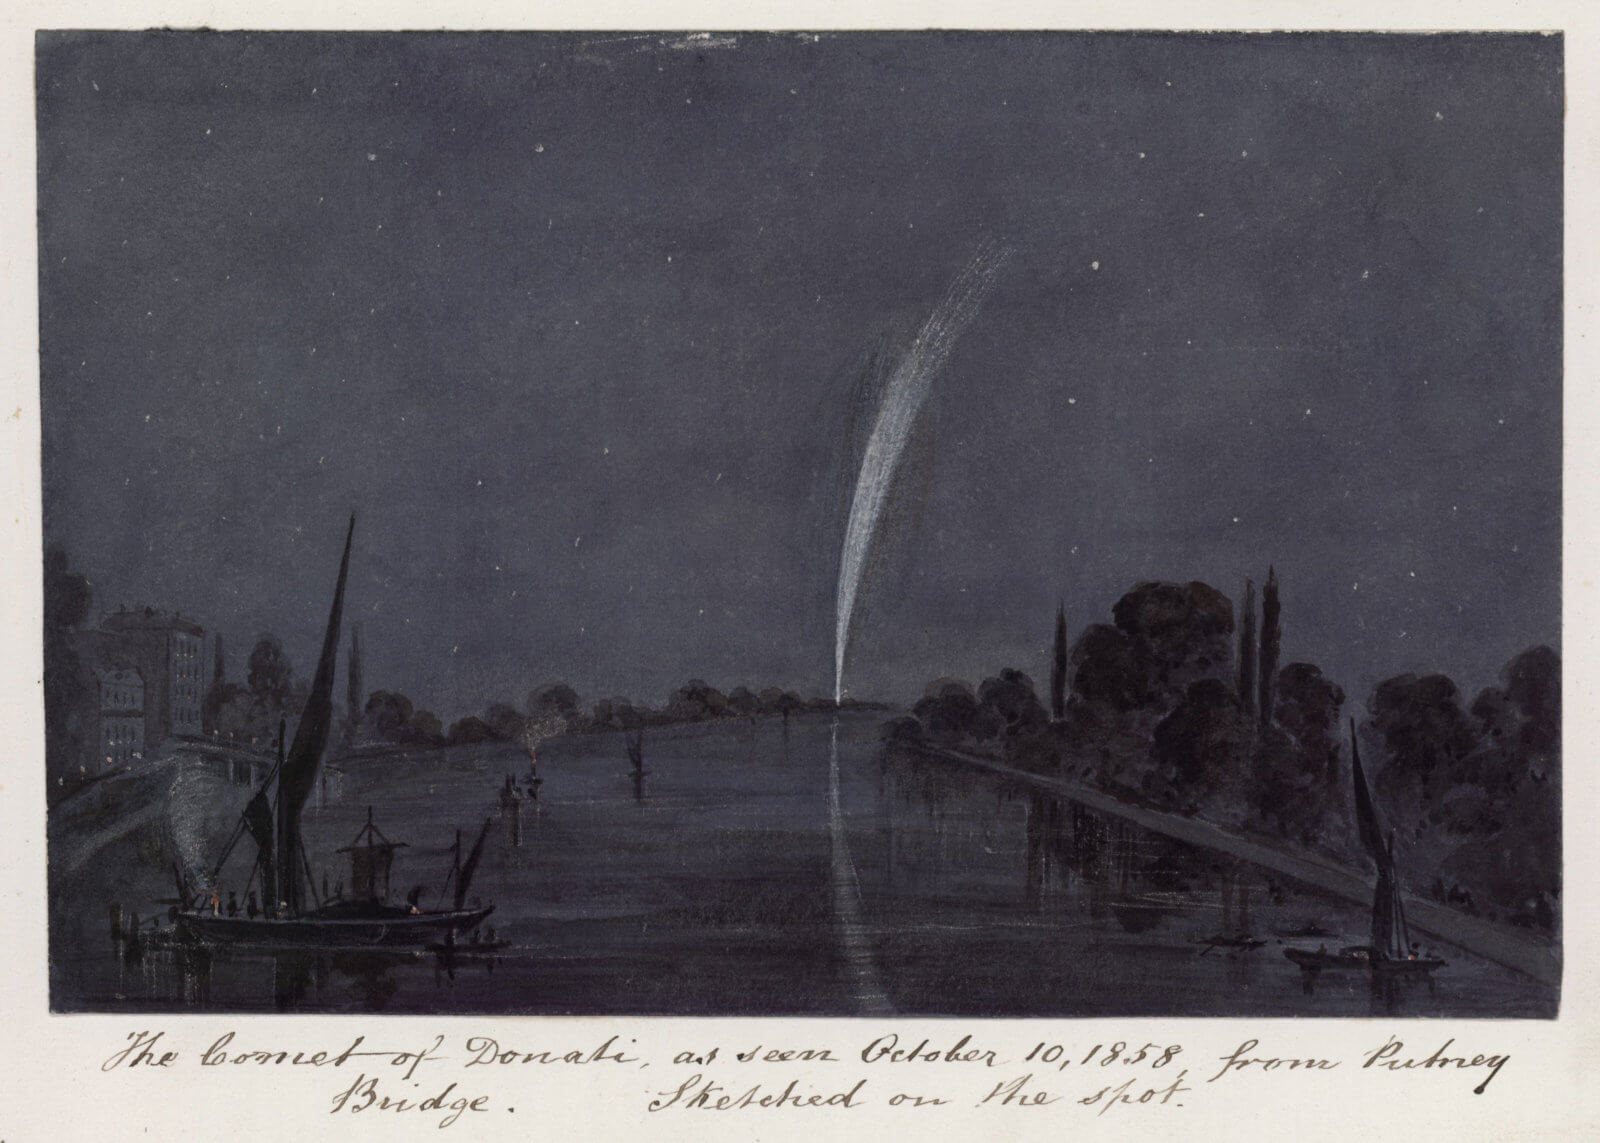 Comet of Donail over the Thames at night from Putney Bridge, 1858